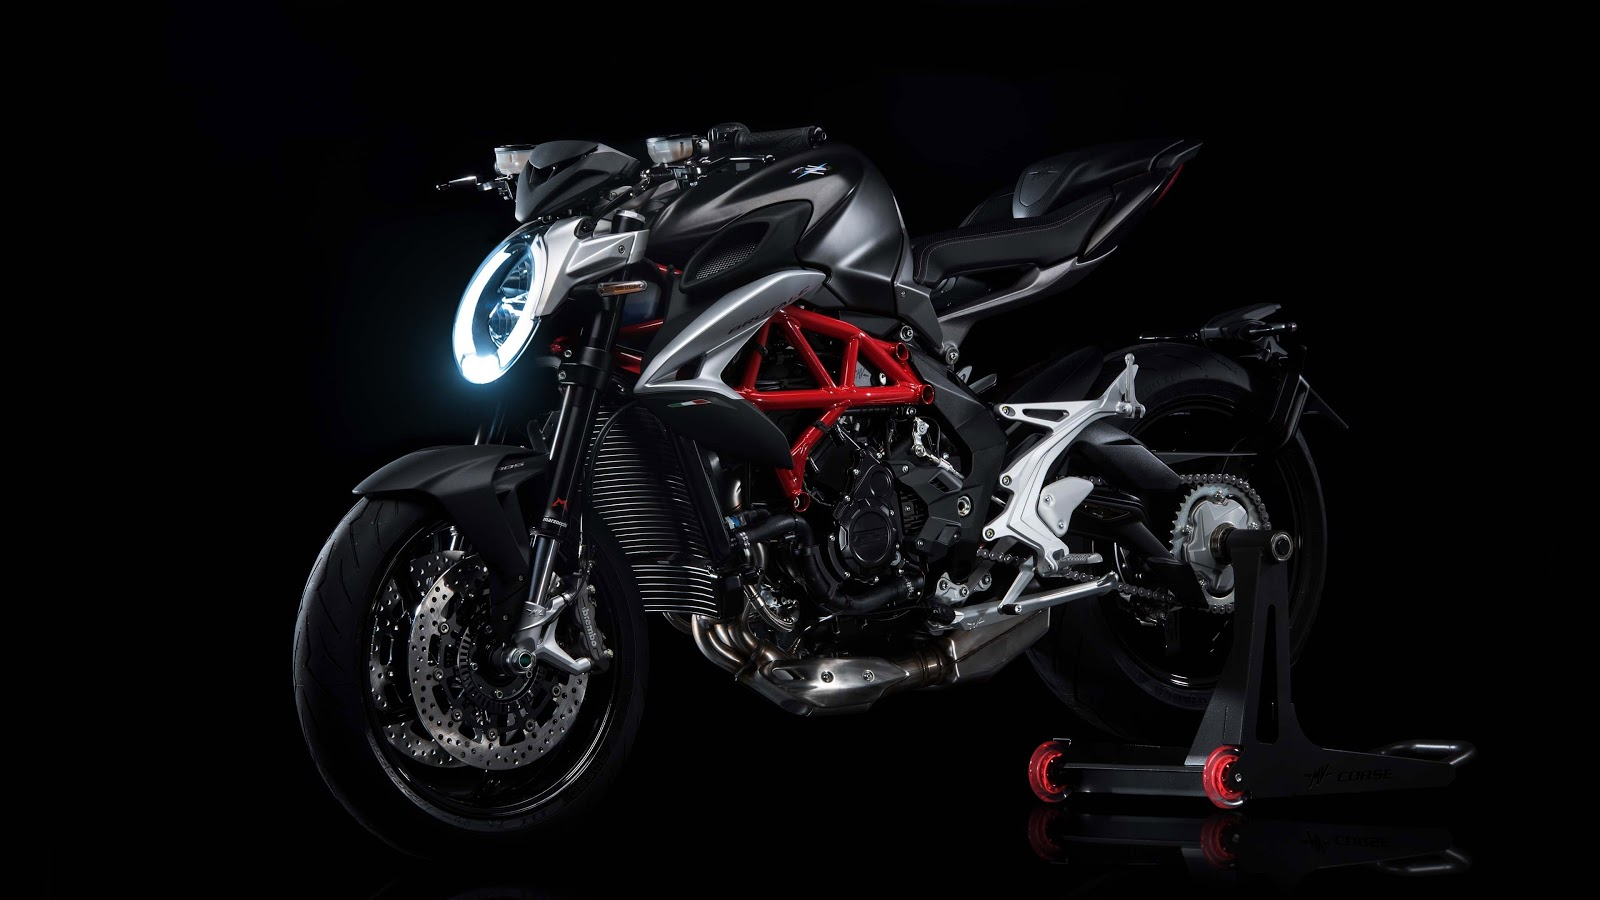 10 best hd bike wallpapers | bike photos | images [2018 edition